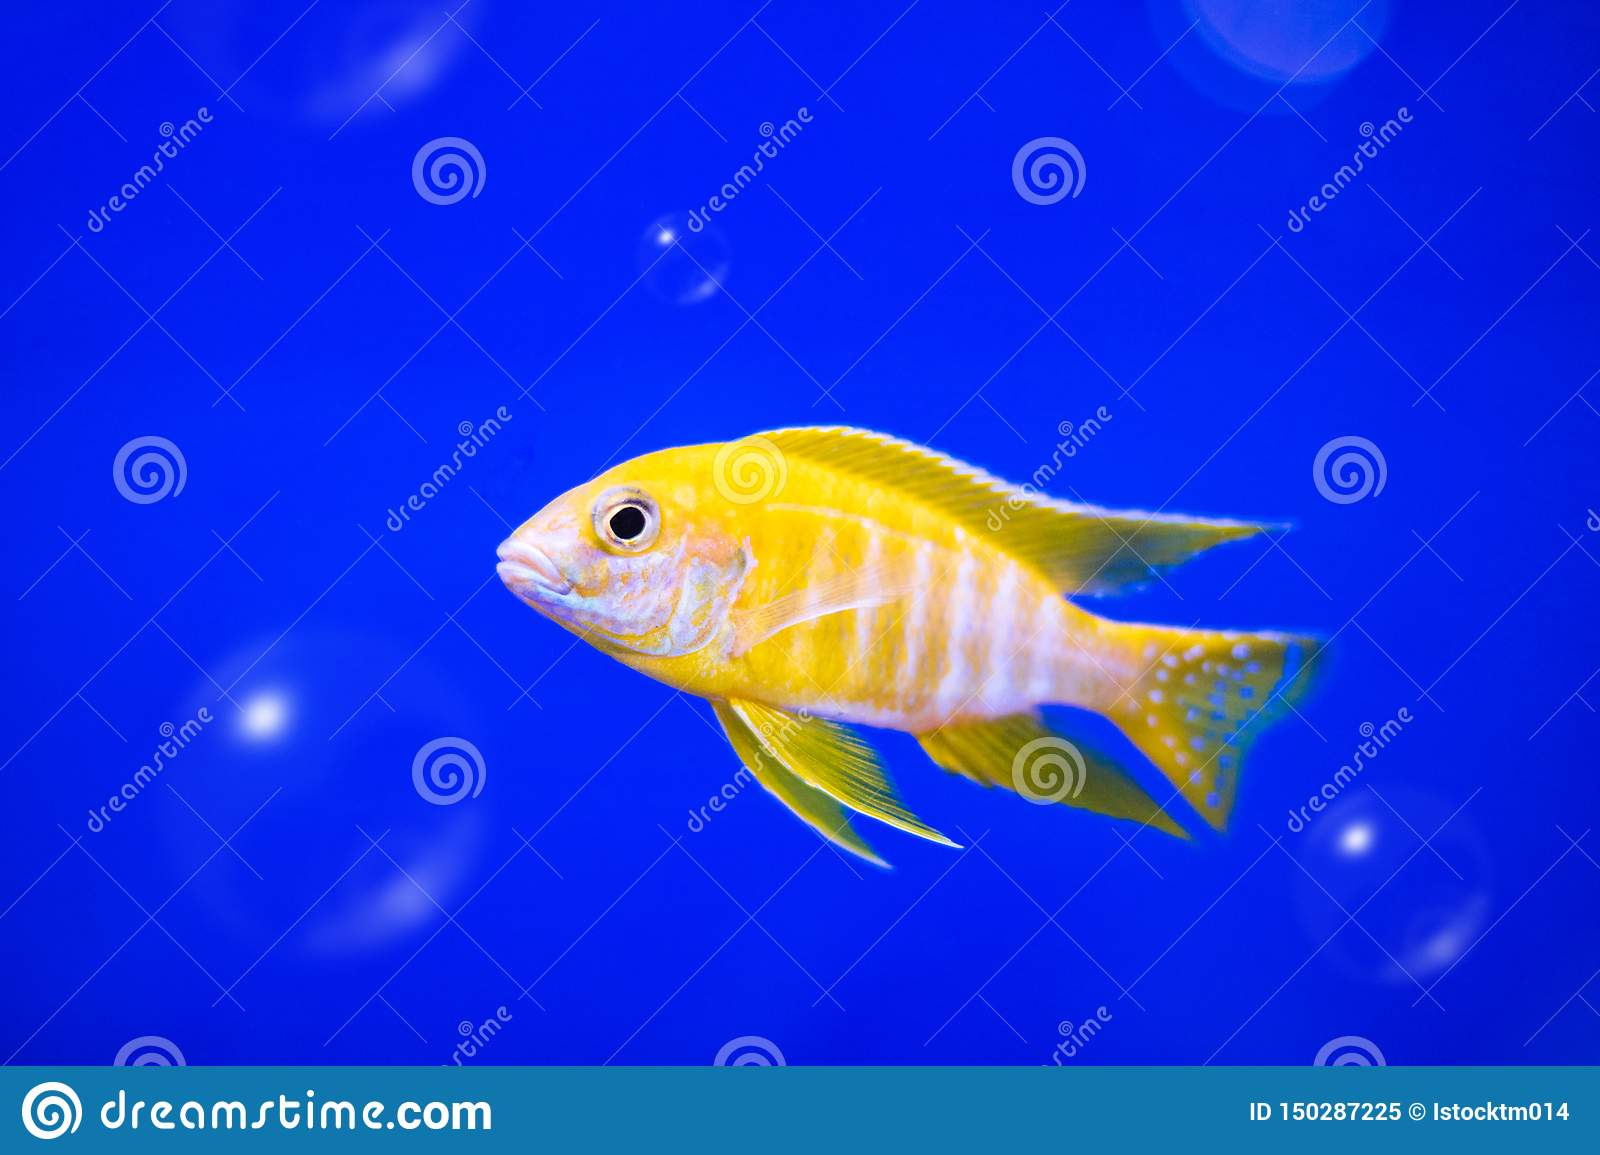 Cichlids fish on underwater background with bubbles. Yellow colors